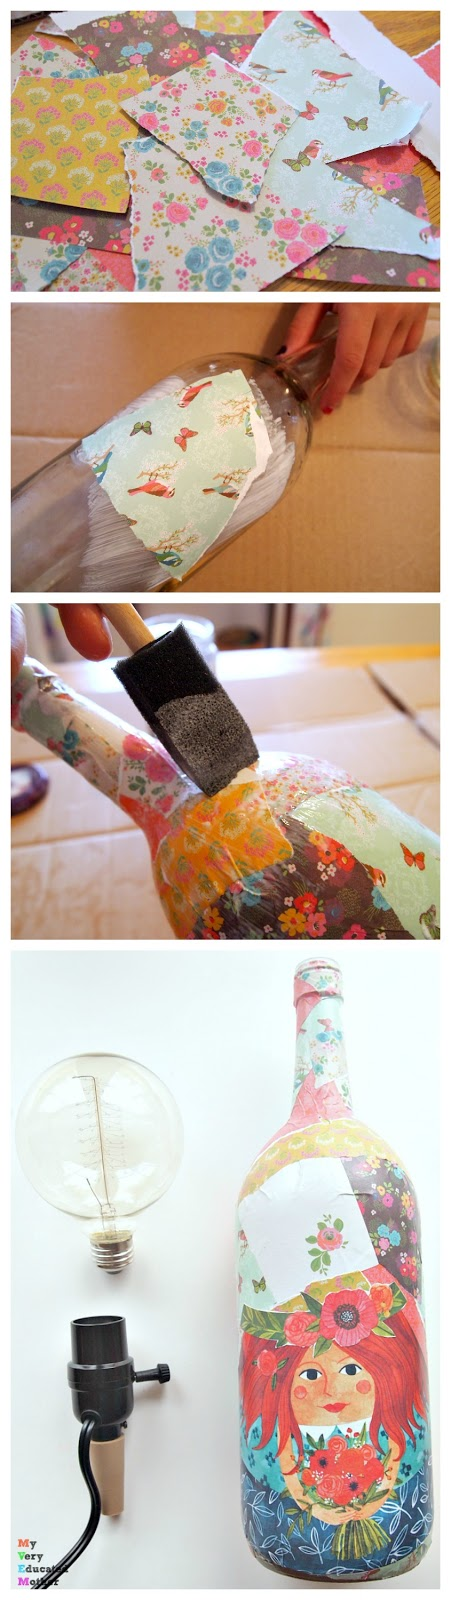 How to decoupage a wine bottle and turn it into an Edison lamp to give as a crafty DIY gift idea.